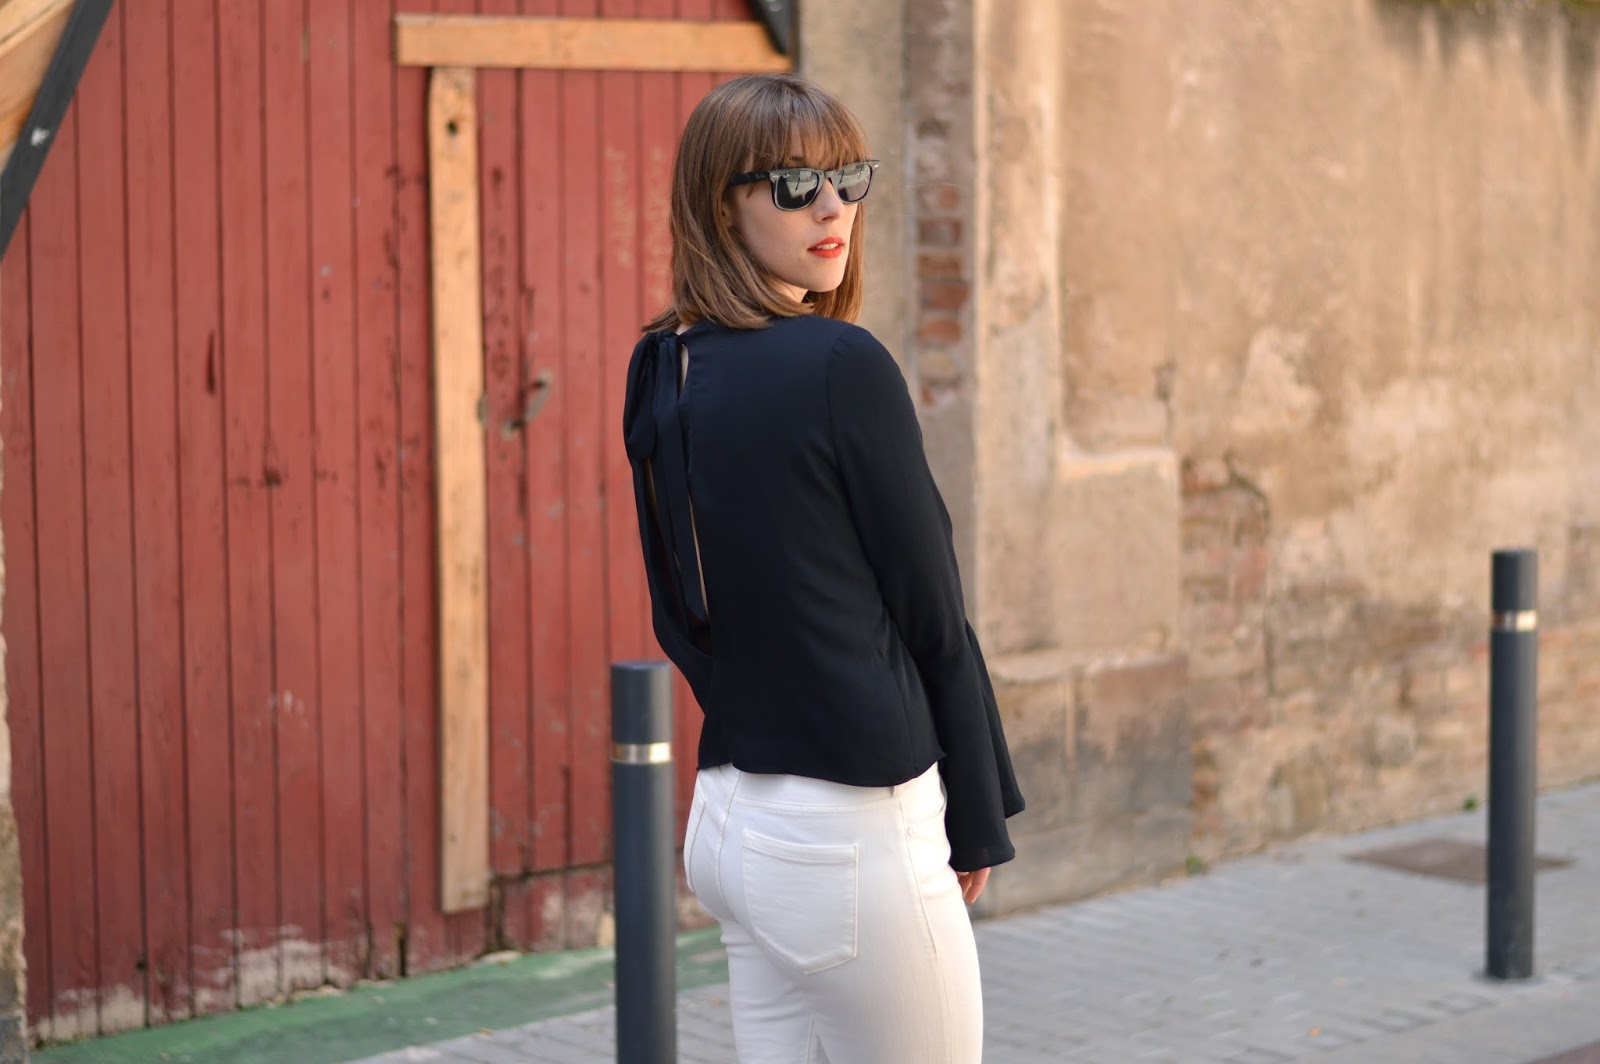 Embroidered white jeans and flared sleeves top SS16 trends